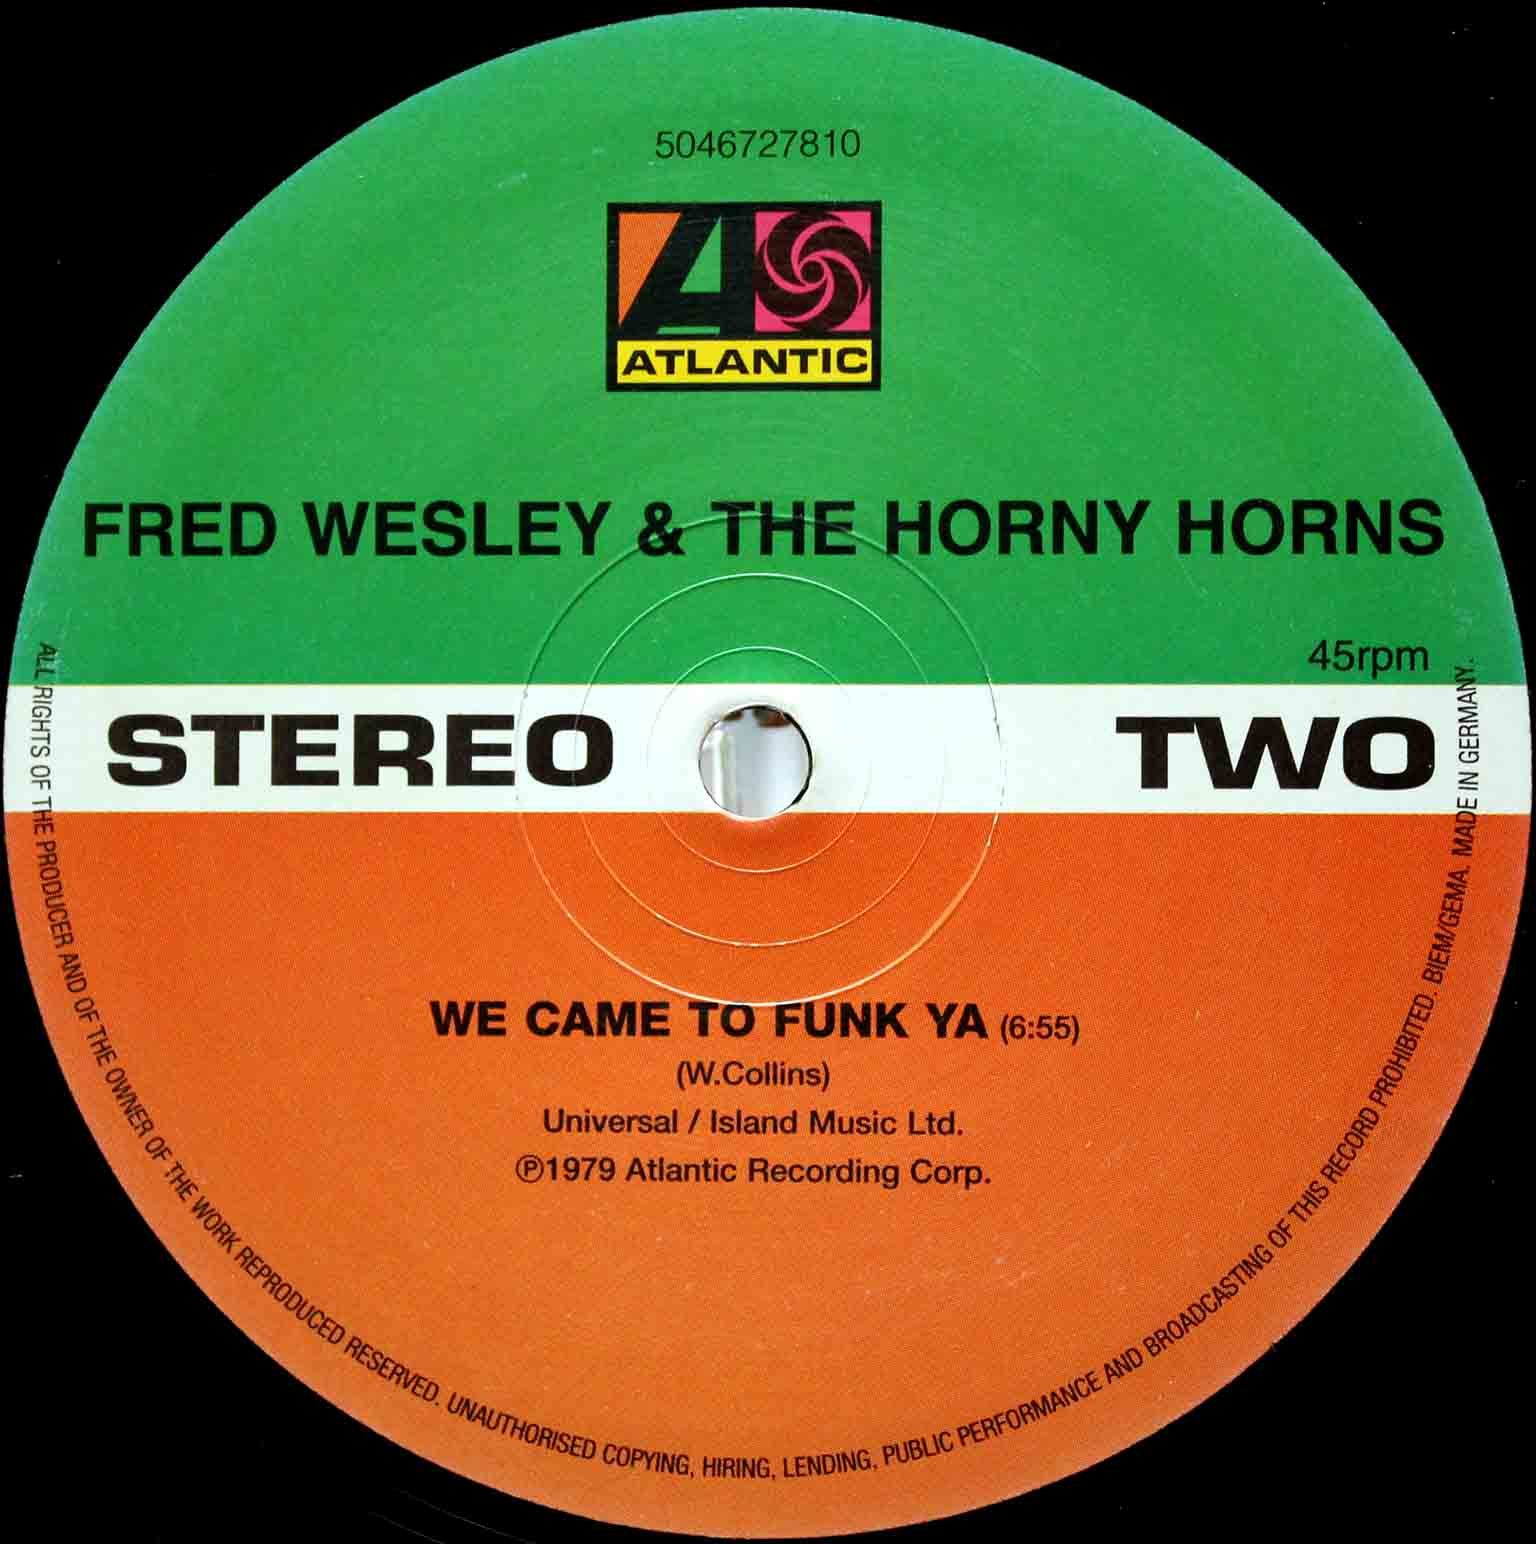 Fred Wesley The Horny Horns ‎– Four Play 04